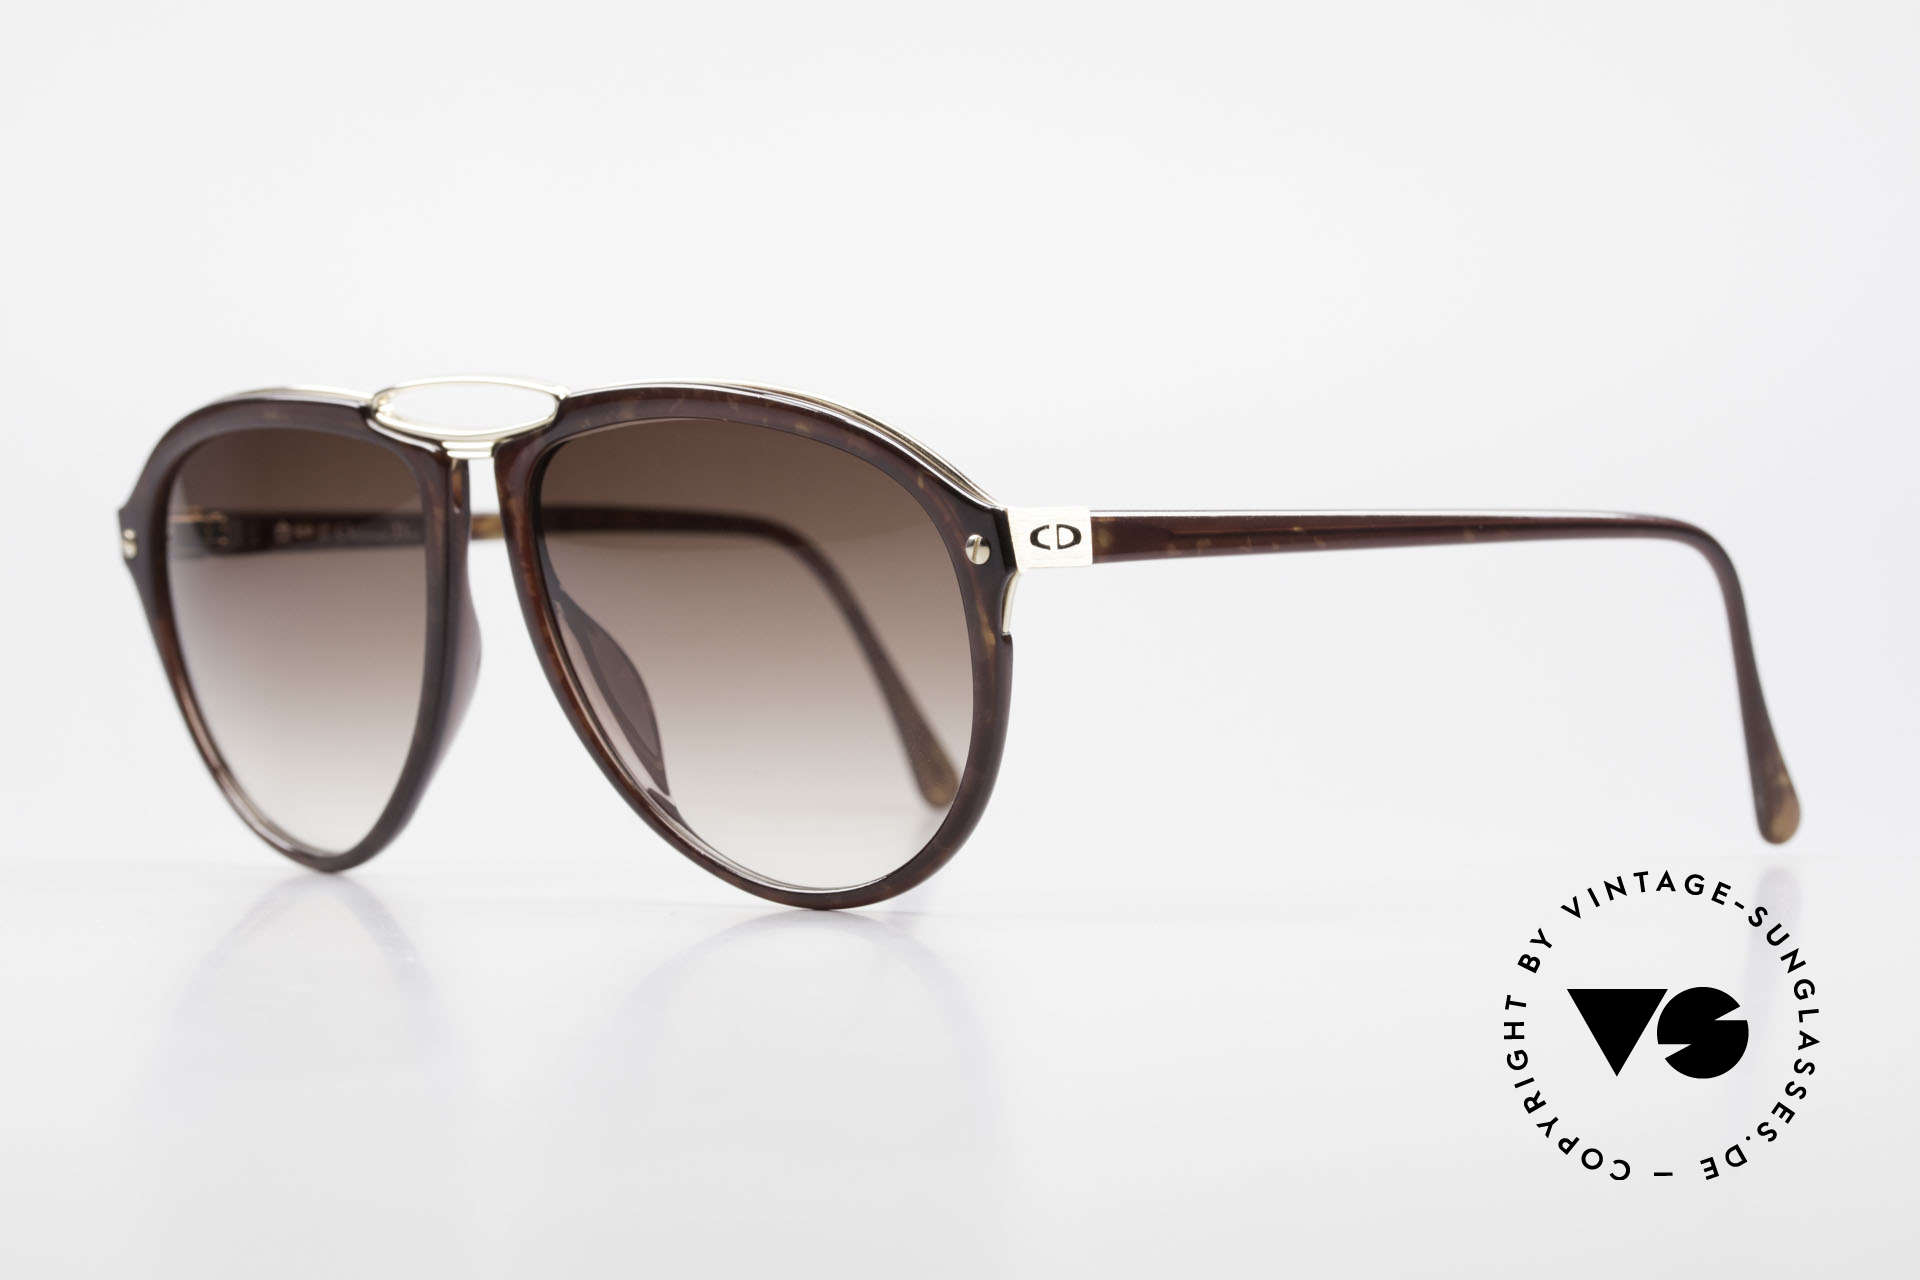 Christian Dior 2523 True 80's No Retro Sunglasses, flexible synthetic (OPTYL) frame with a metal inlay, Made for Men